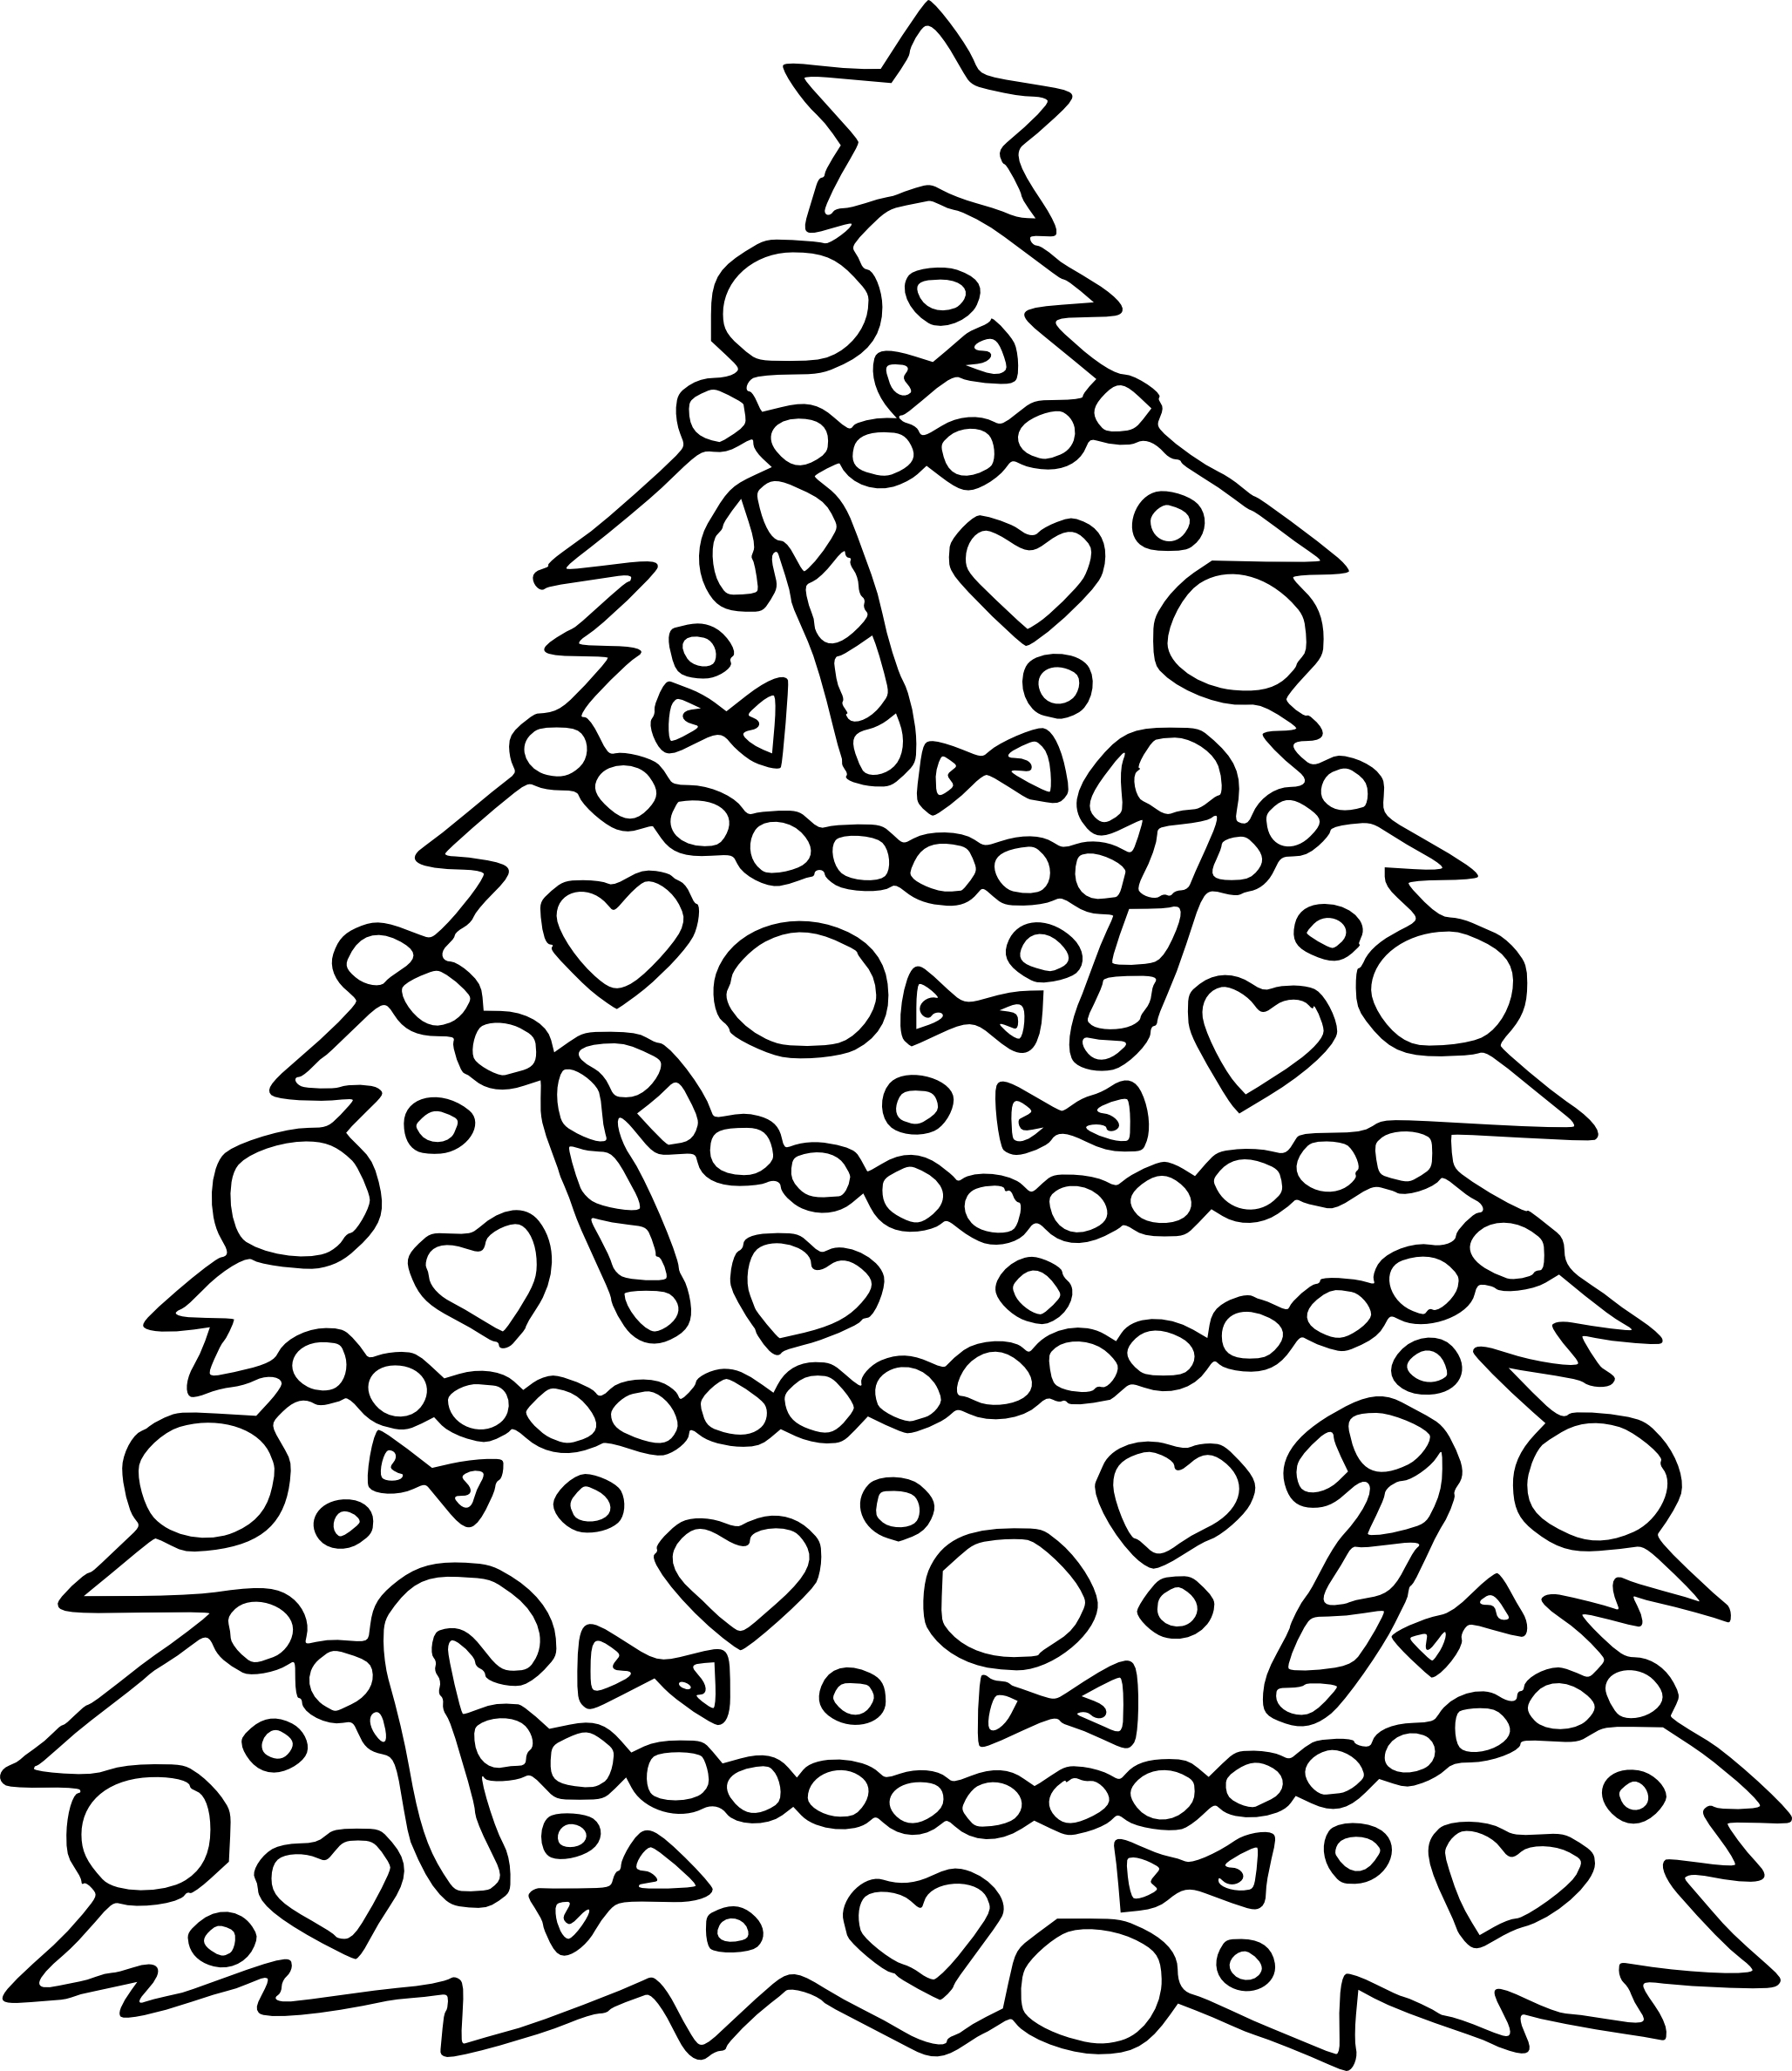 2056x2376 Cristmas Tree Coloring Pages To Print Coloring For Kids